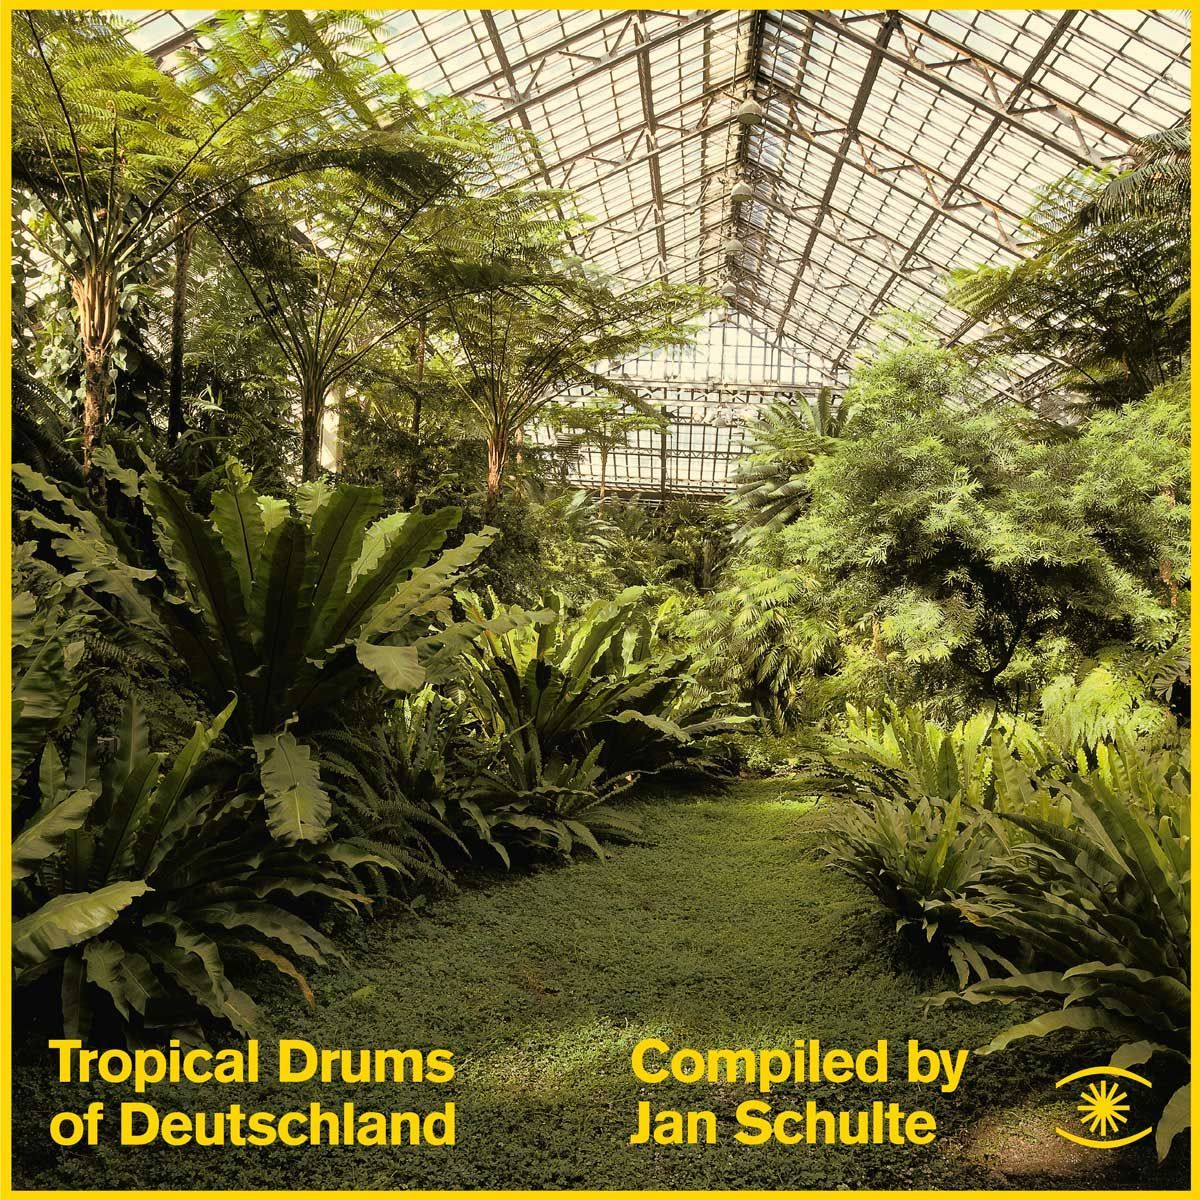 TROPICAL-DRUMS-OF-DEUTSCHLAND.jpg